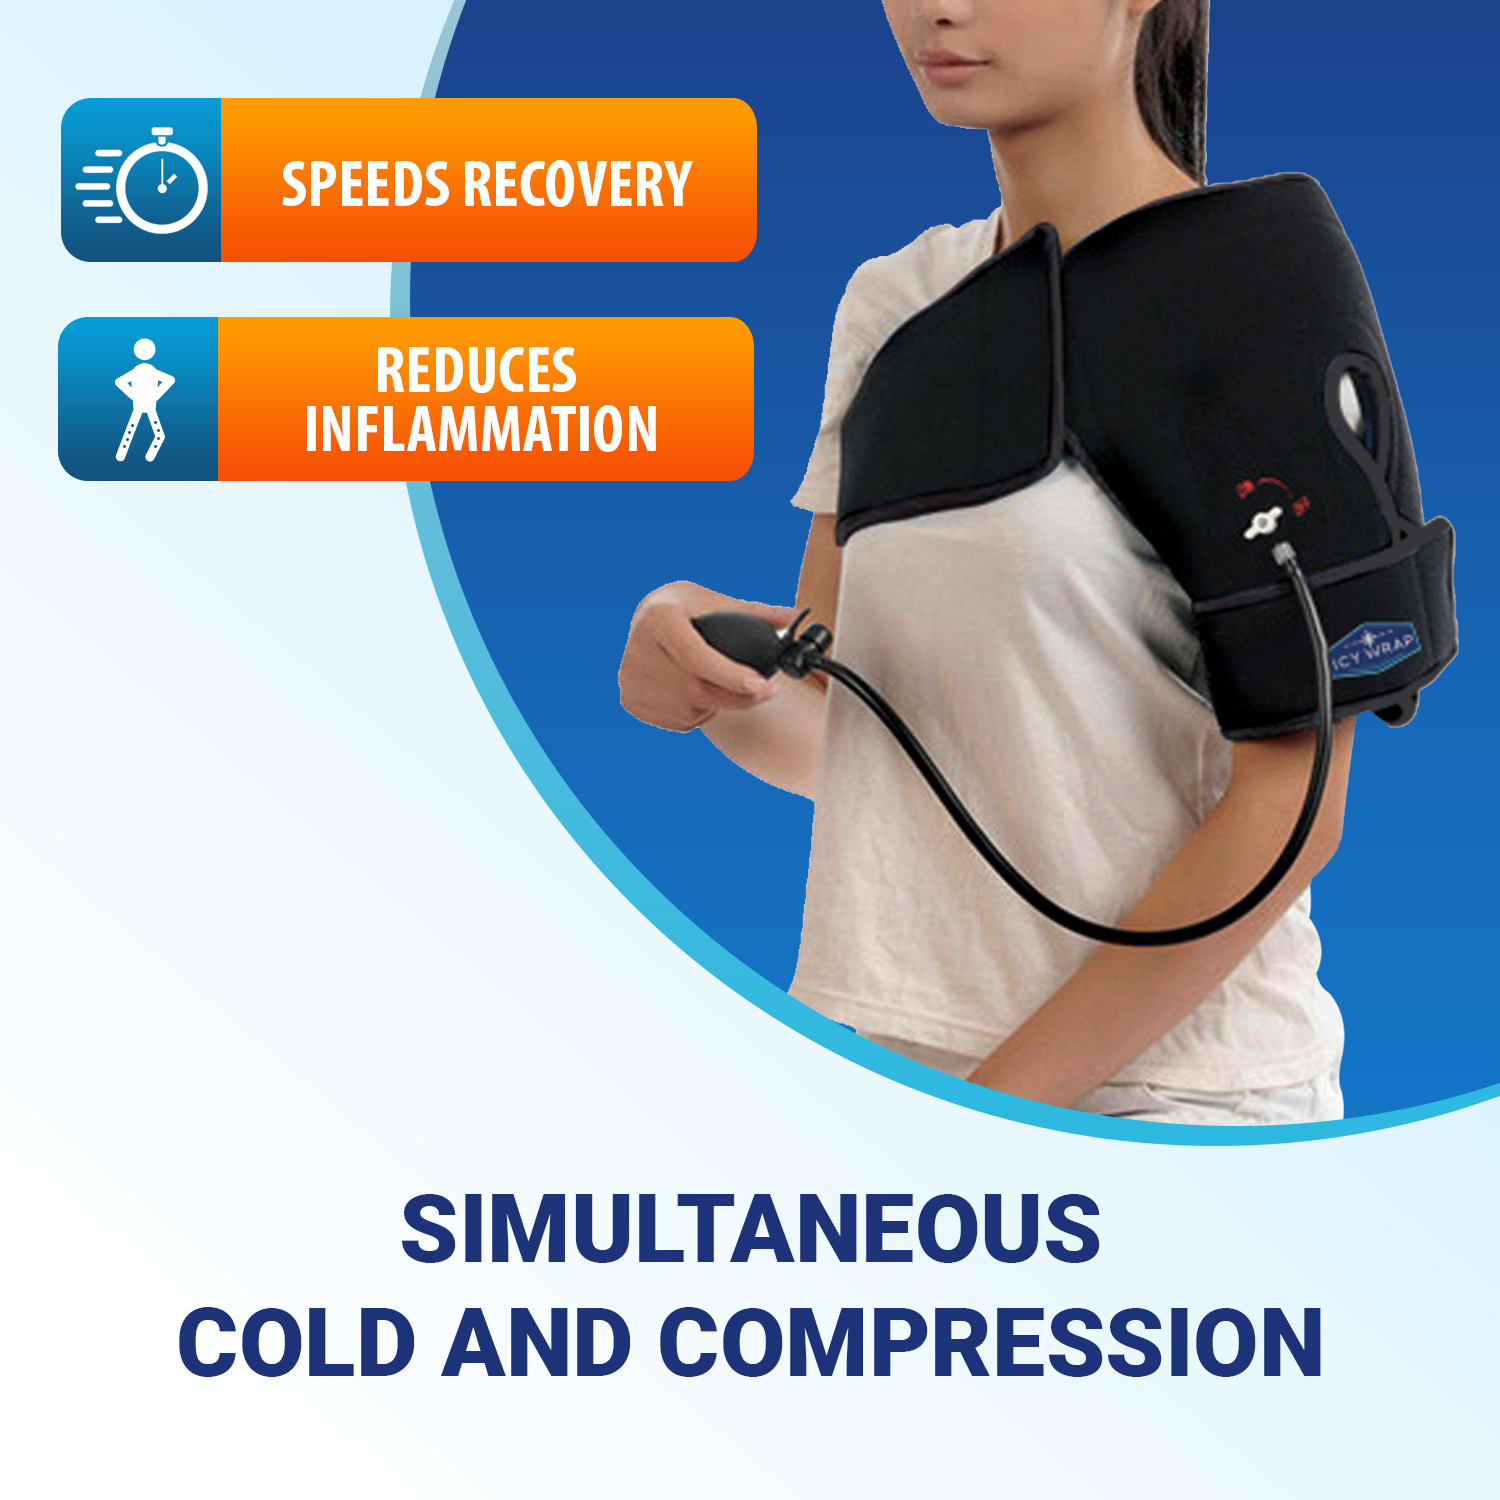 Cold Pack Compression Wrap for Shoulder Pain - Ice Pack Therapy by Icy Wrap - Cryo-Cool Flexible Treatment for Injuries, Aches, Swelling, Sprains, Inflammation of Rotator Cuff